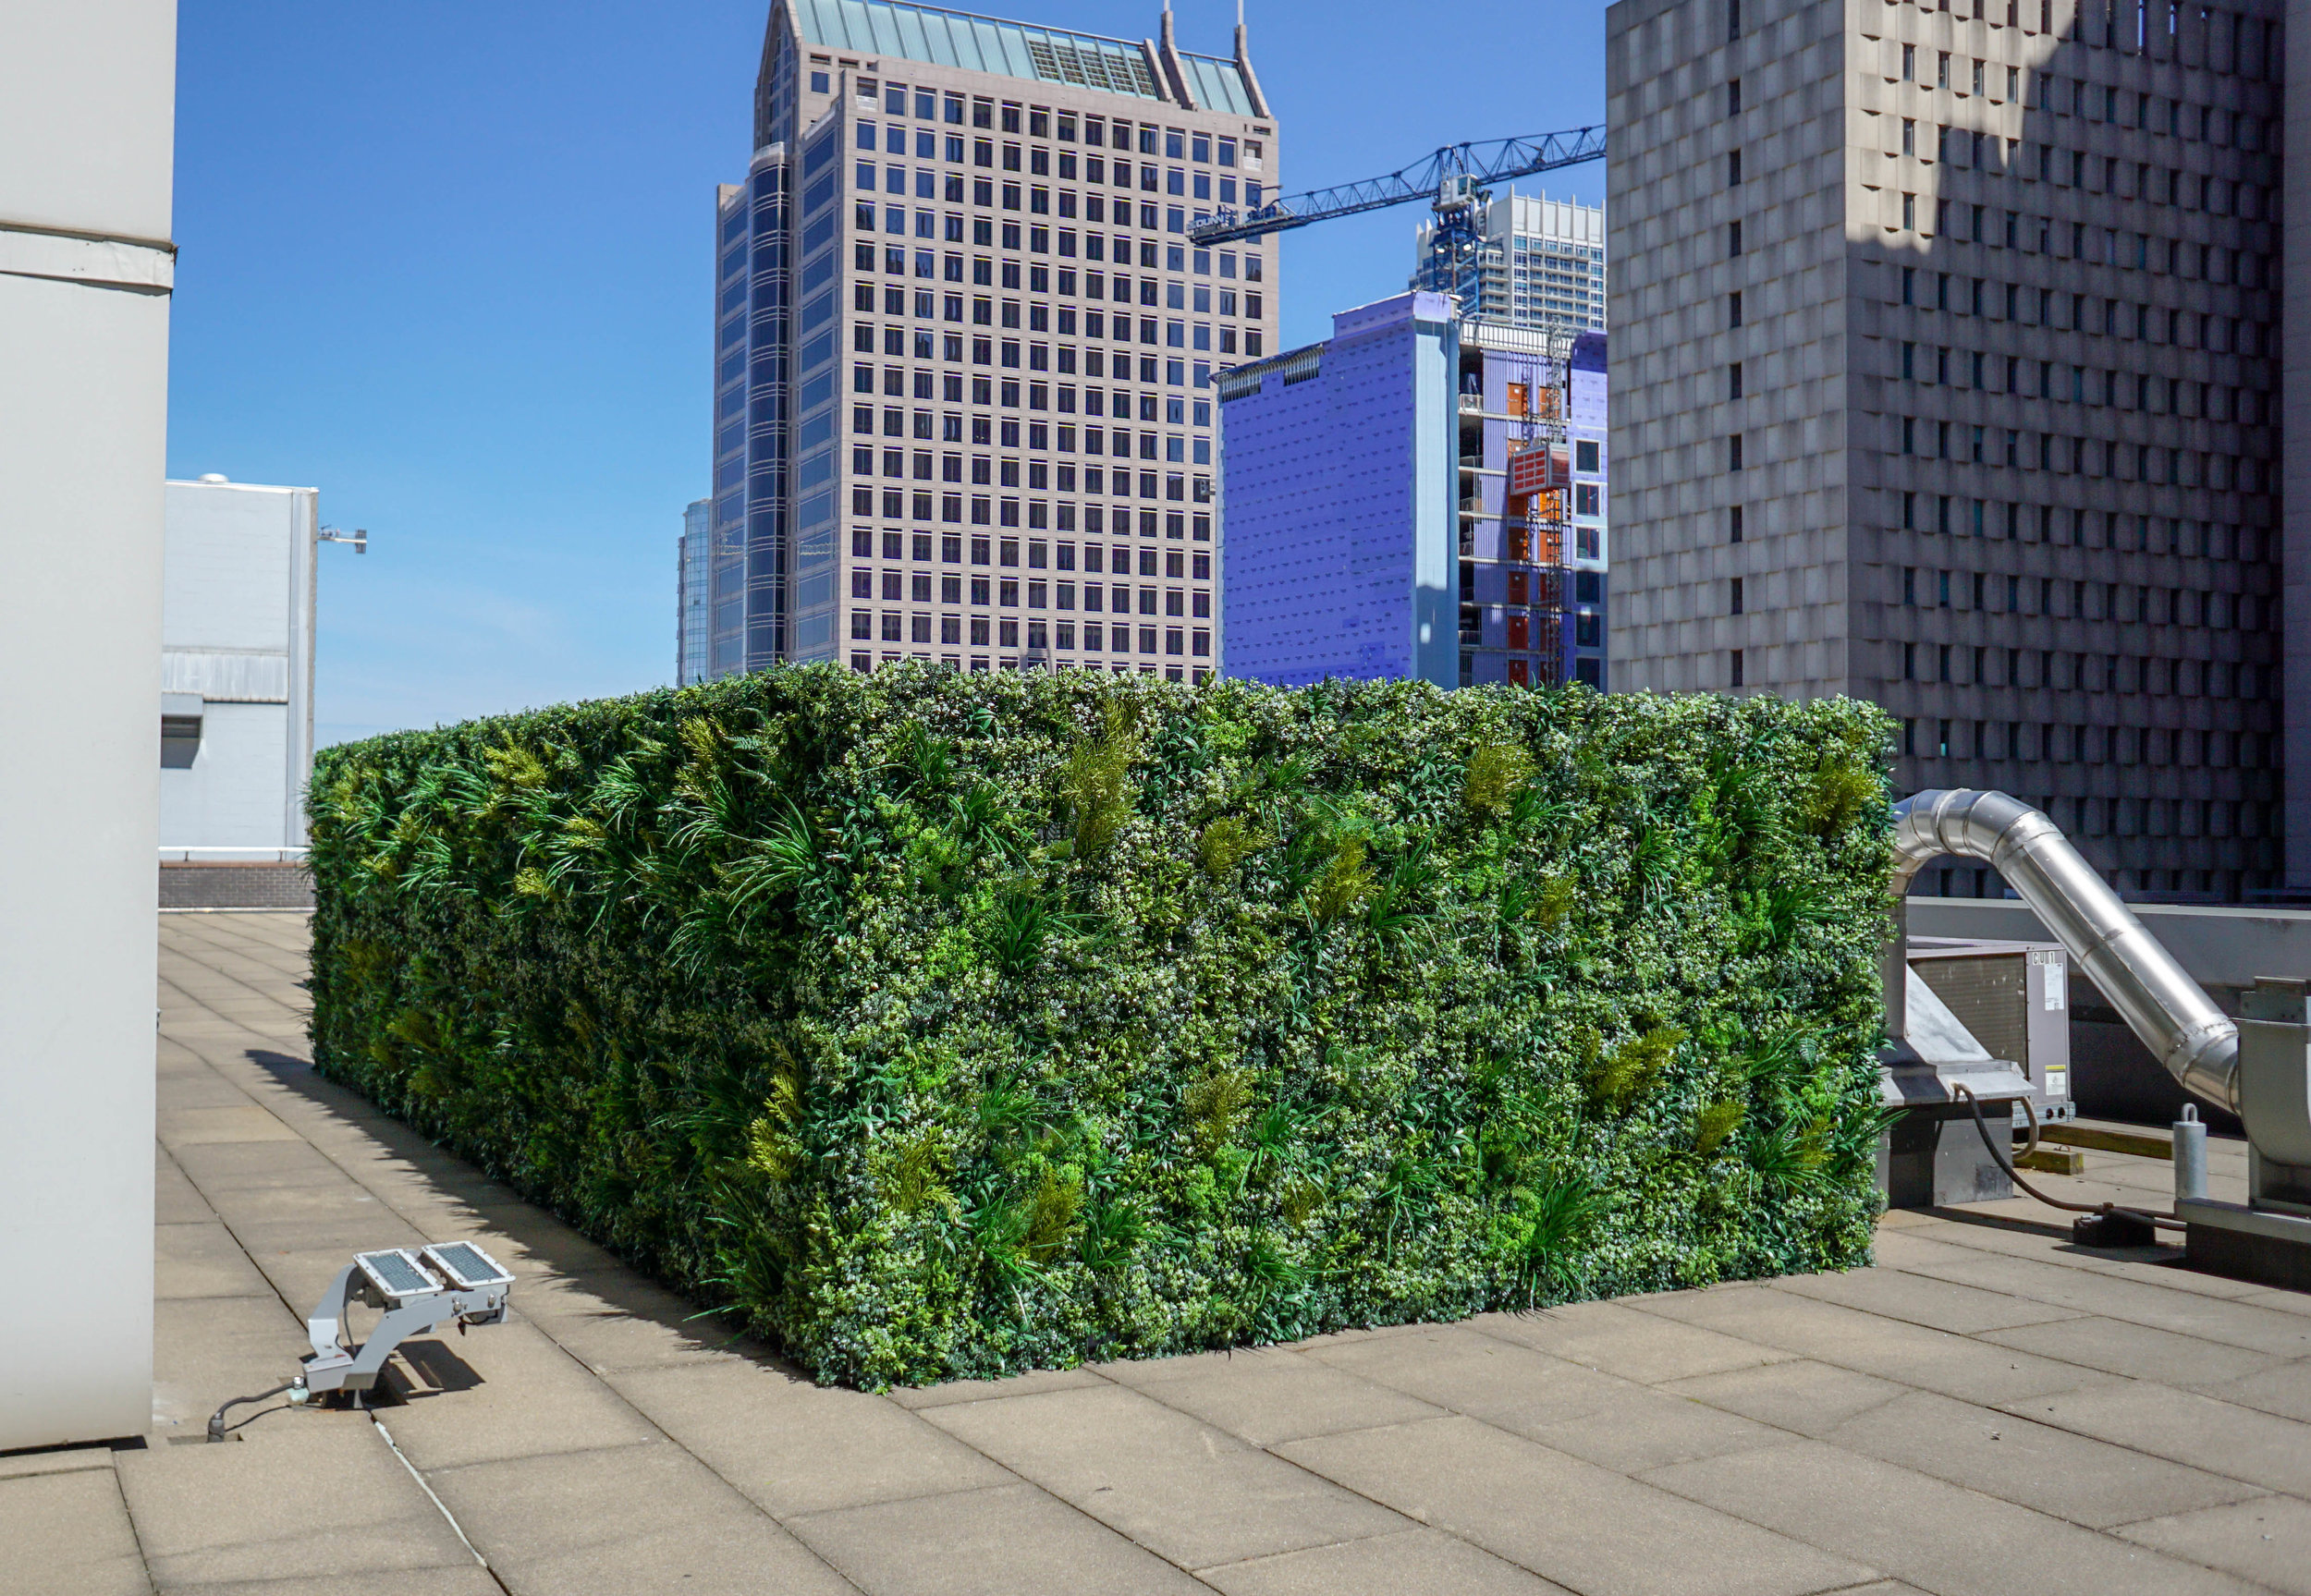 ALW HVAC Screen - Charlotte, NC  Our client wanted a solution to hide unsightly HVAC equipment outside a 5th floor suite in Uptown Charlotte. We used Lush Green panels for this outdoor project.